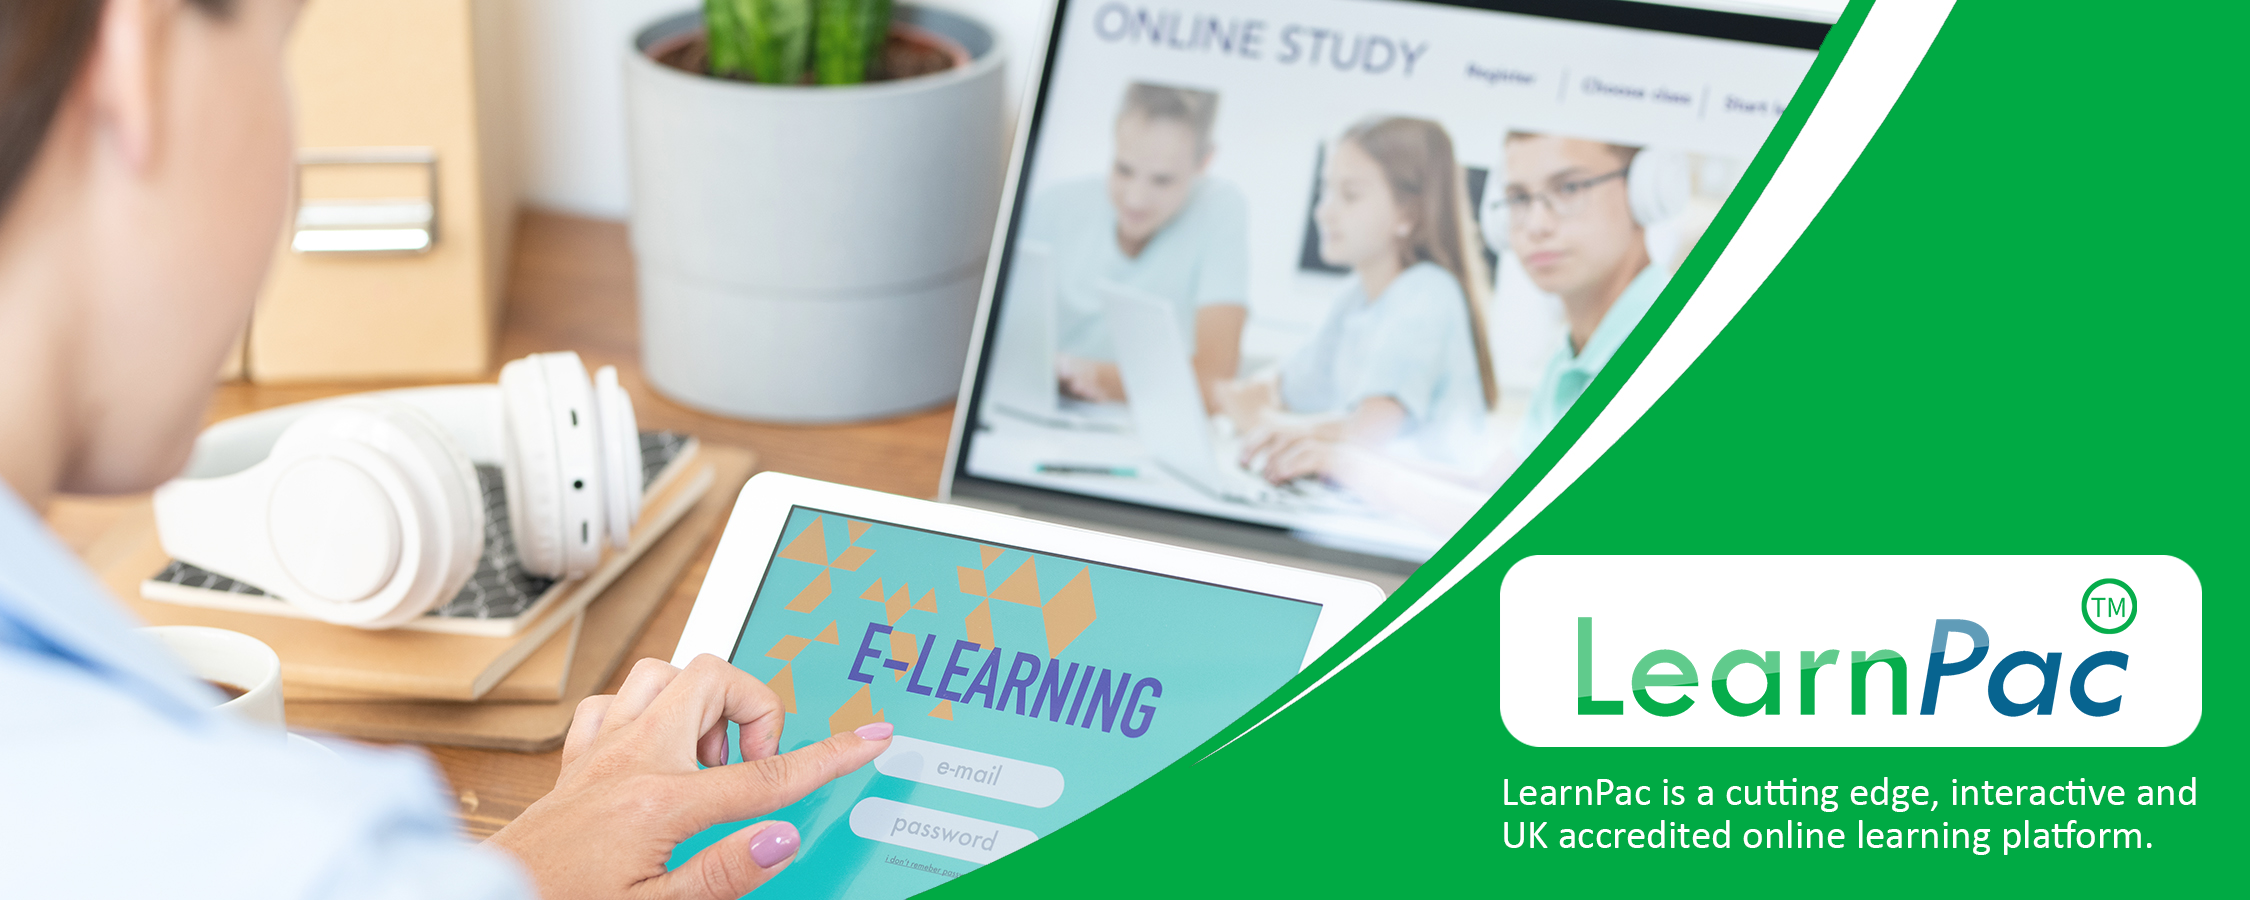 Mandatory Training for Allied Health Professionals - Online Learning Courses - E-Learning Courses - LearnPac